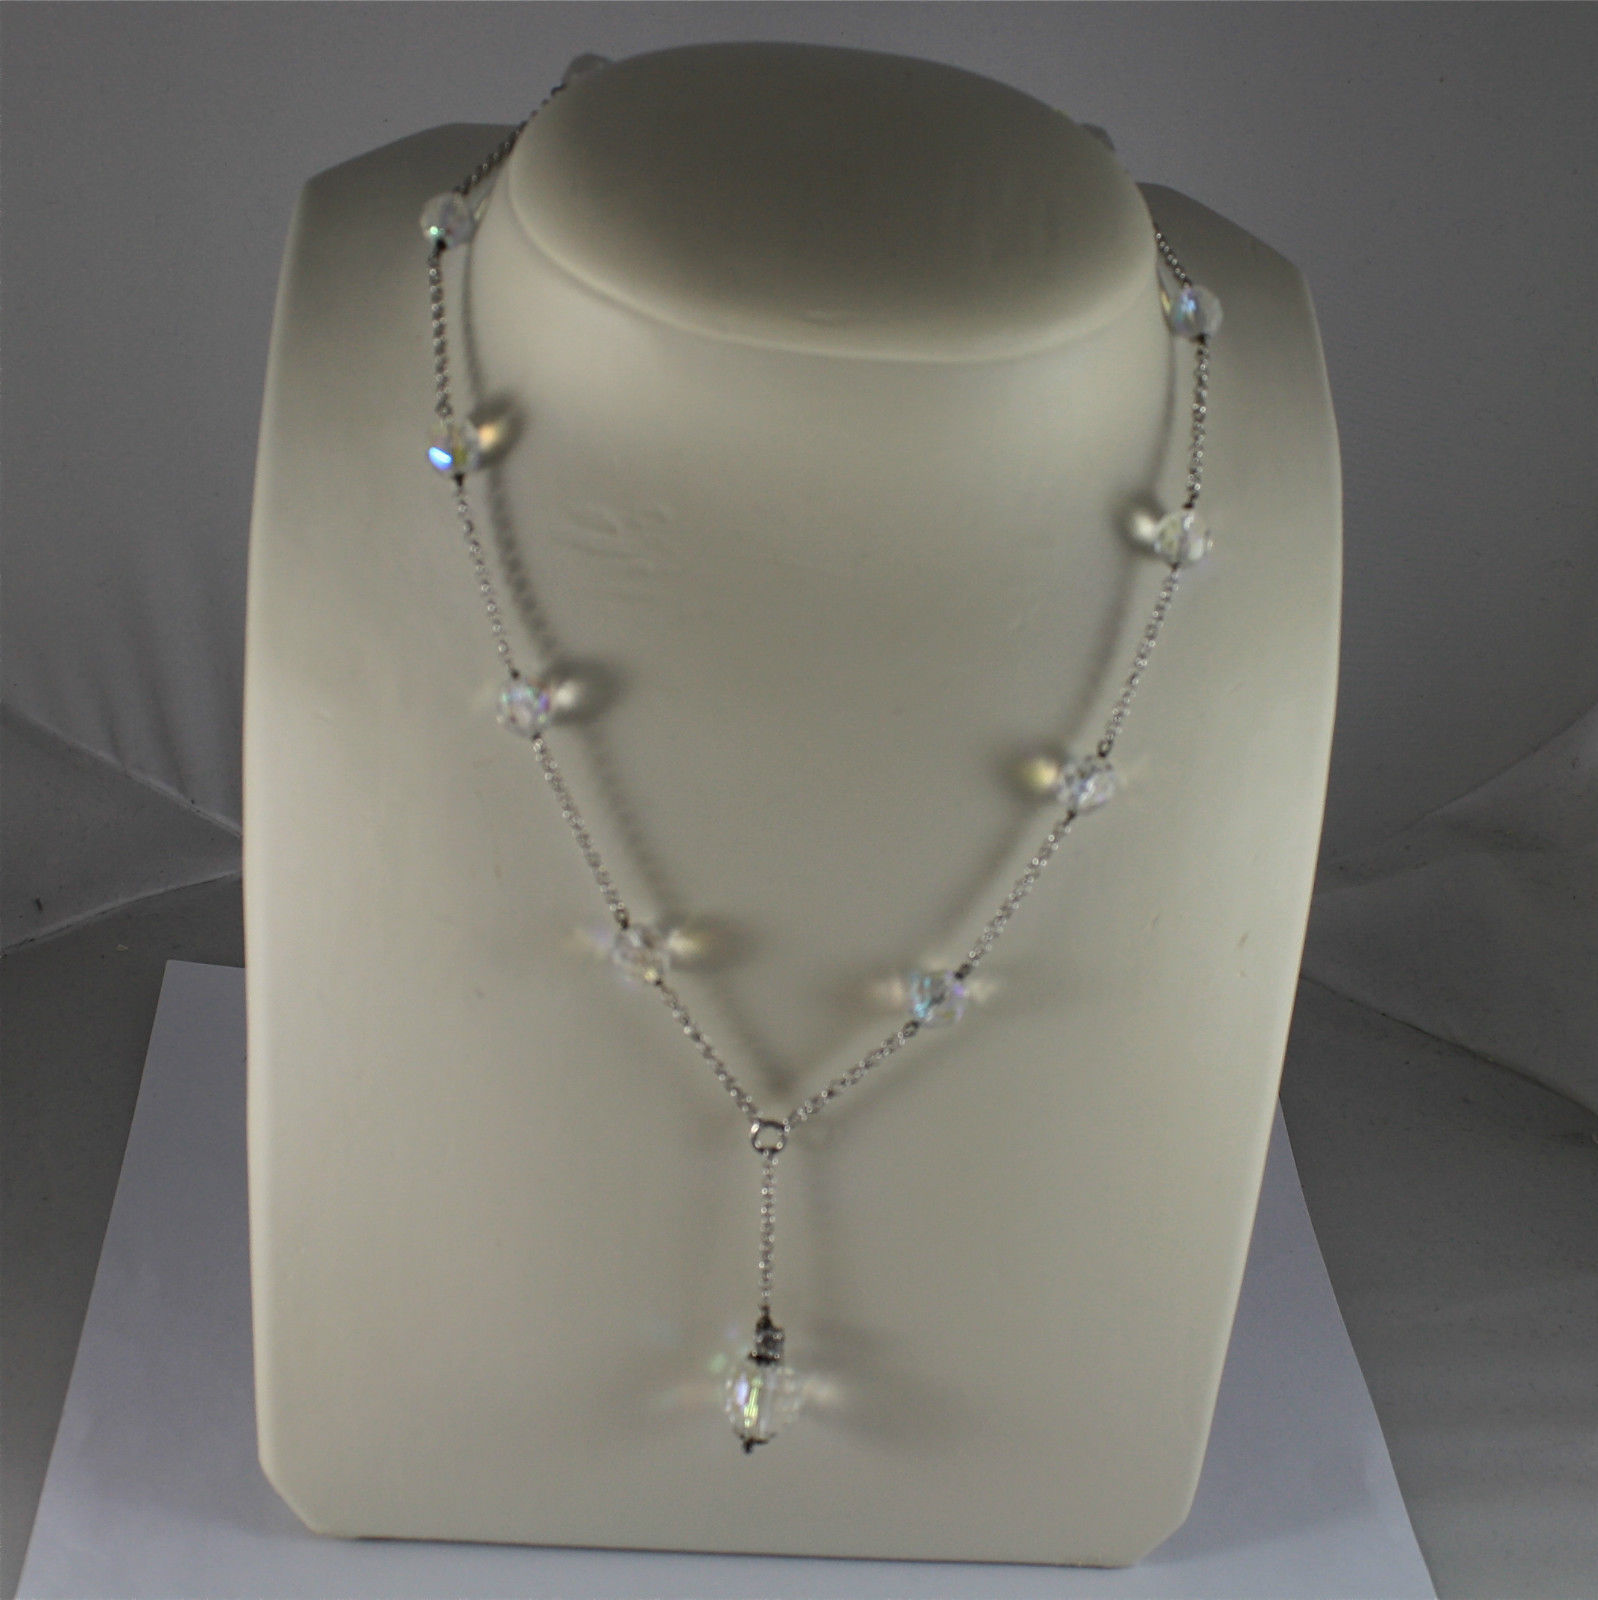 .925 RHODIUM SILVER NECKLACE, 17,32 In, FACETED CRISTAL BALLS, SINGLE PENDANT.